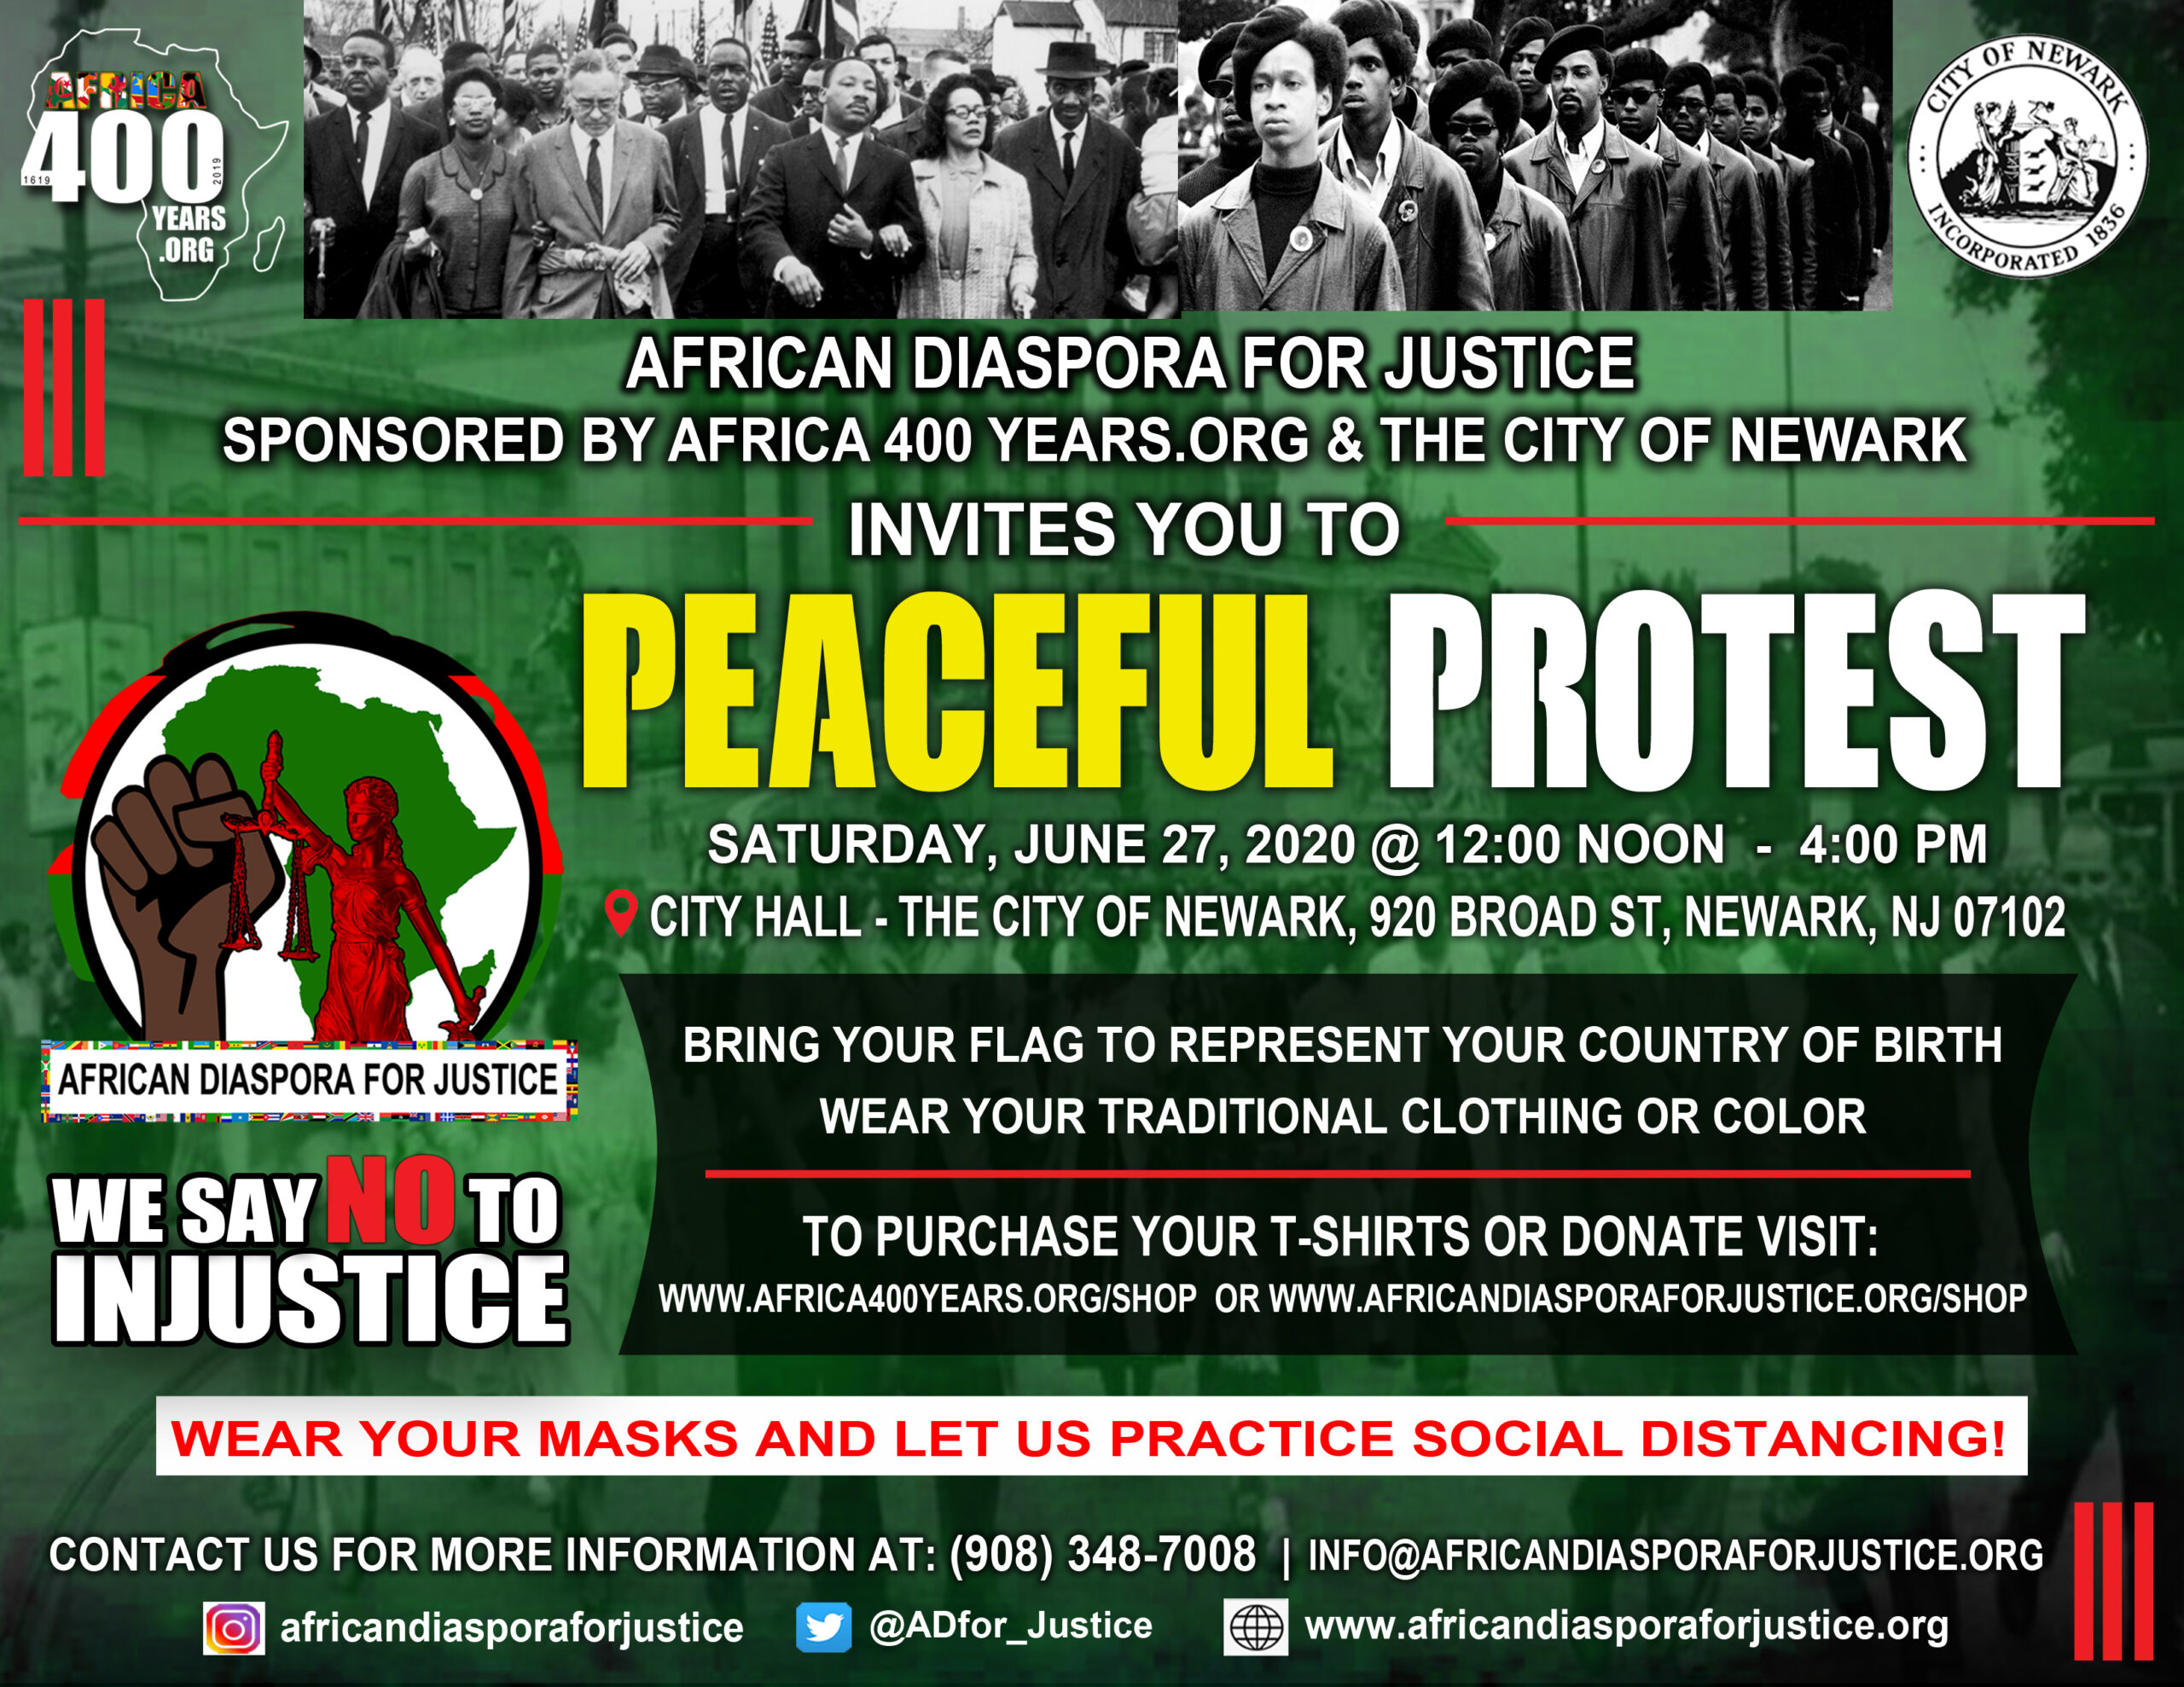 AD4 JUSTICE PEACE PROTEST FLYER